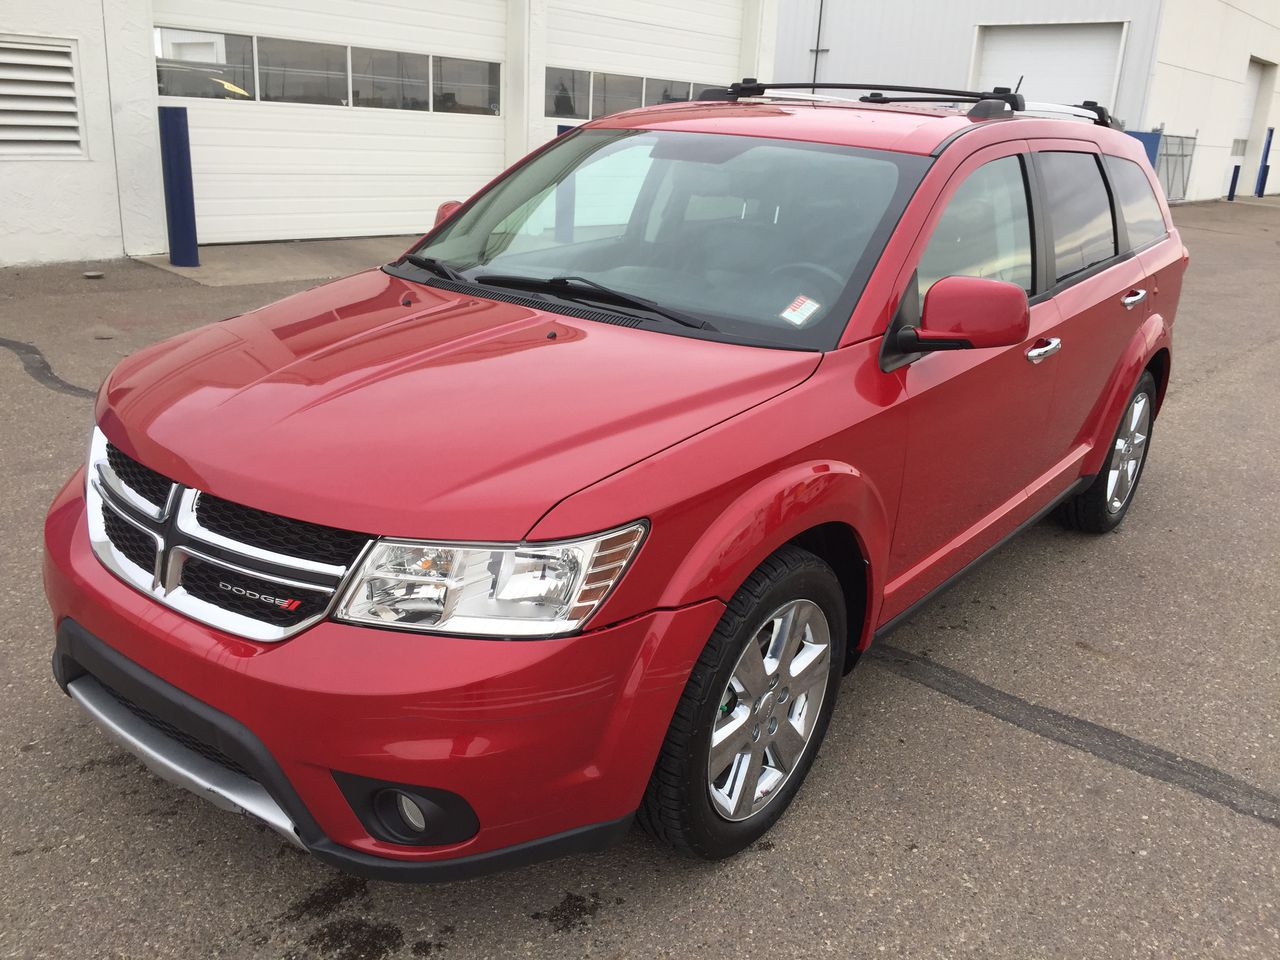 2012 Dodge Journey AWD R/T (U3766A) Main Image